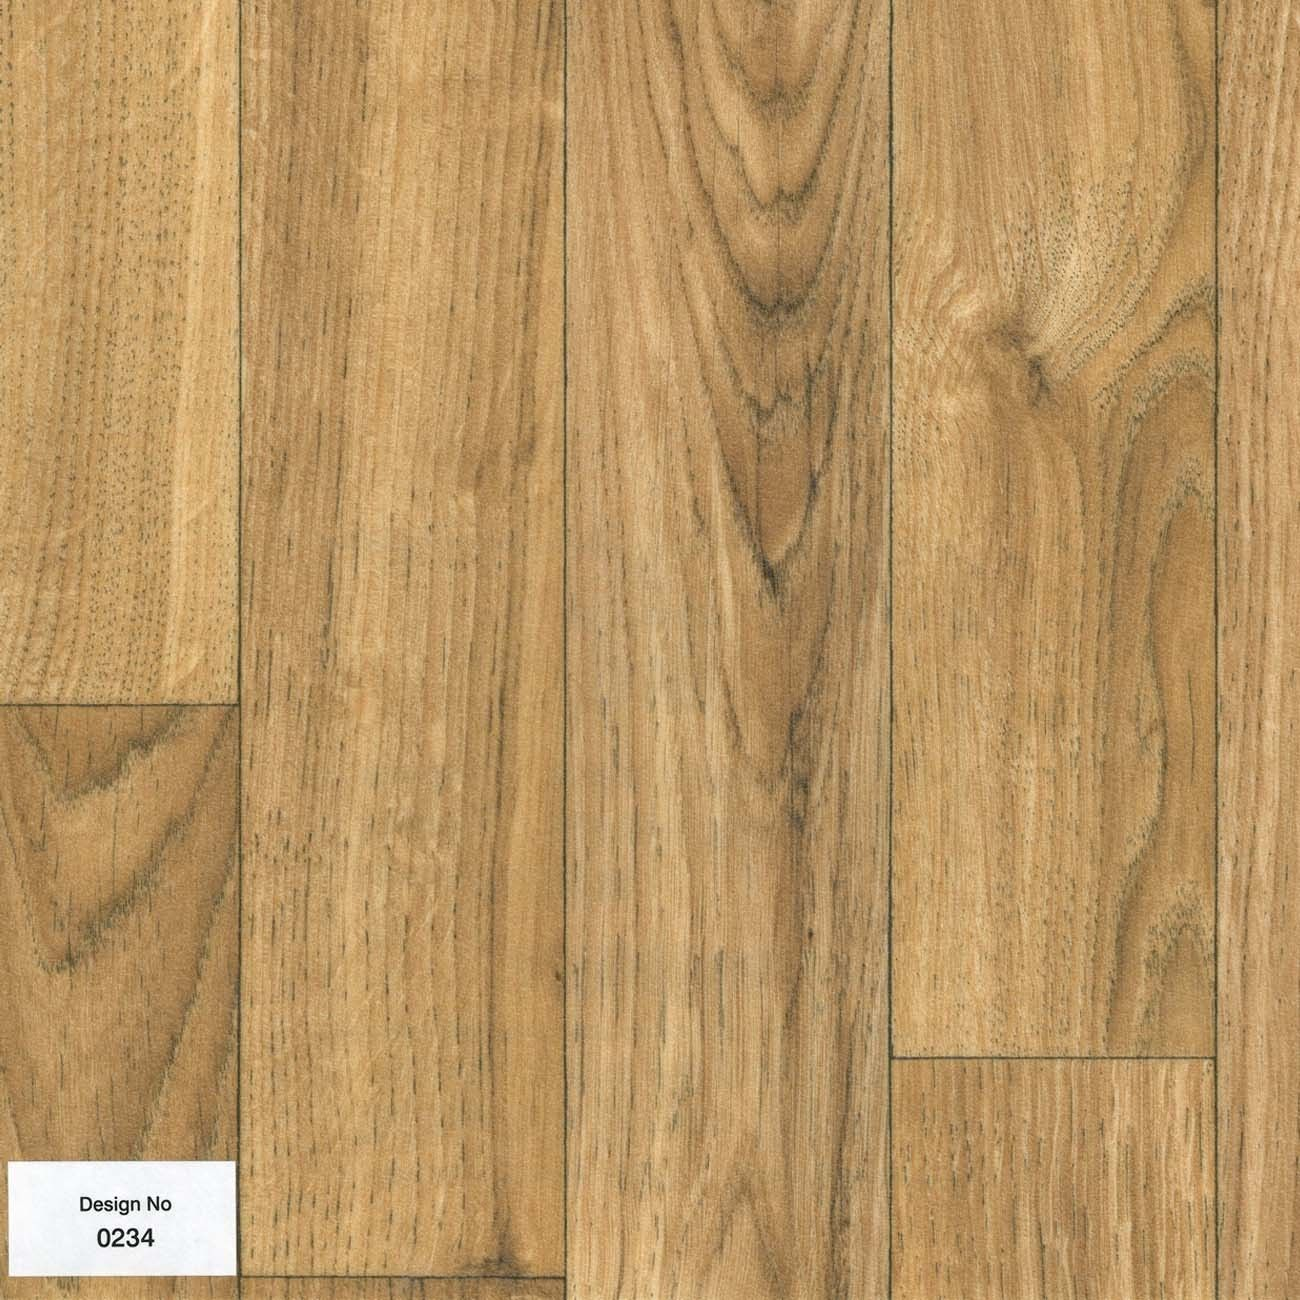 Bring In A Real Look Of Wood Into Your Home With Our Wood - Durability of vinyl wood plank flooring